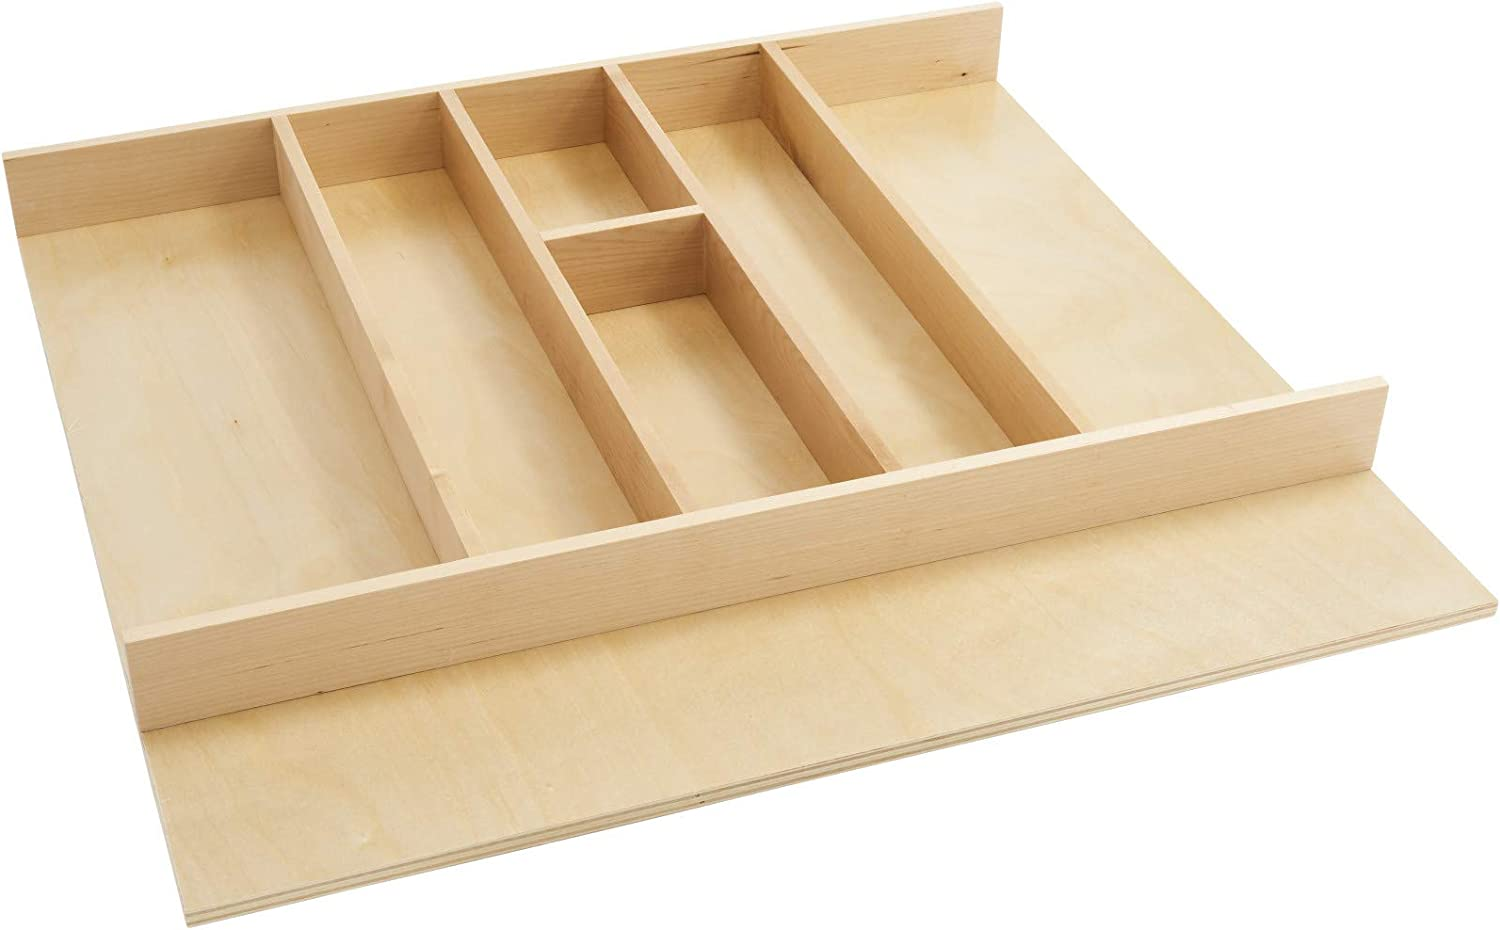 Rev-A-Shelf 4WUT-3SH 24-Inch Shallow Trimmable Wooden Kitchen Drawer Divider Utility Holder Cutlery Tray Organizer Insert with 7 Slots, Maple